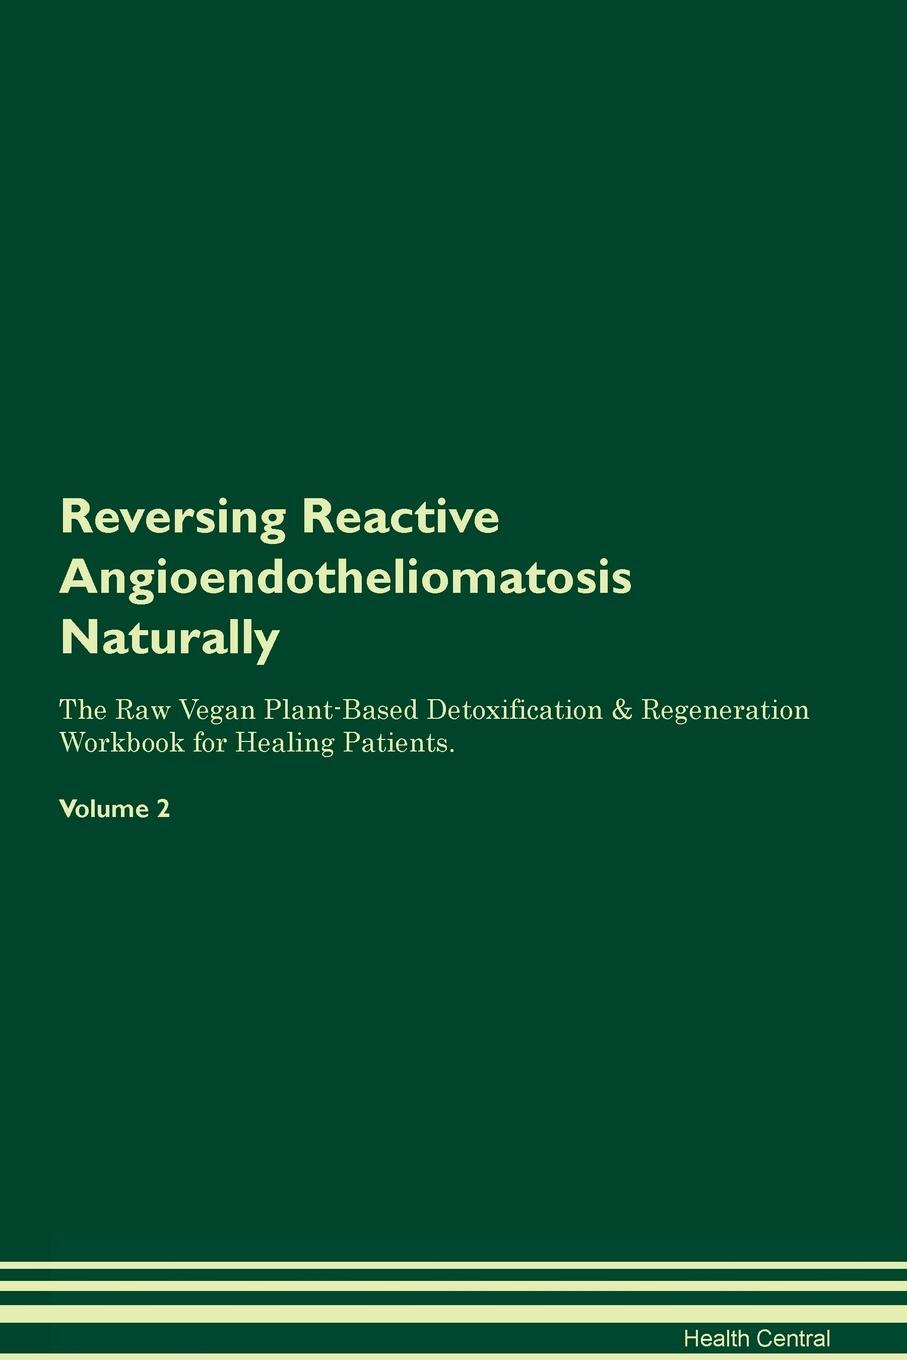 Reversing Reactive Angioendotheliomatosis Naturally The Raw Vegan Plant-Based Detoxification & Regeneration Workbook for Healing Patients. Volume 2